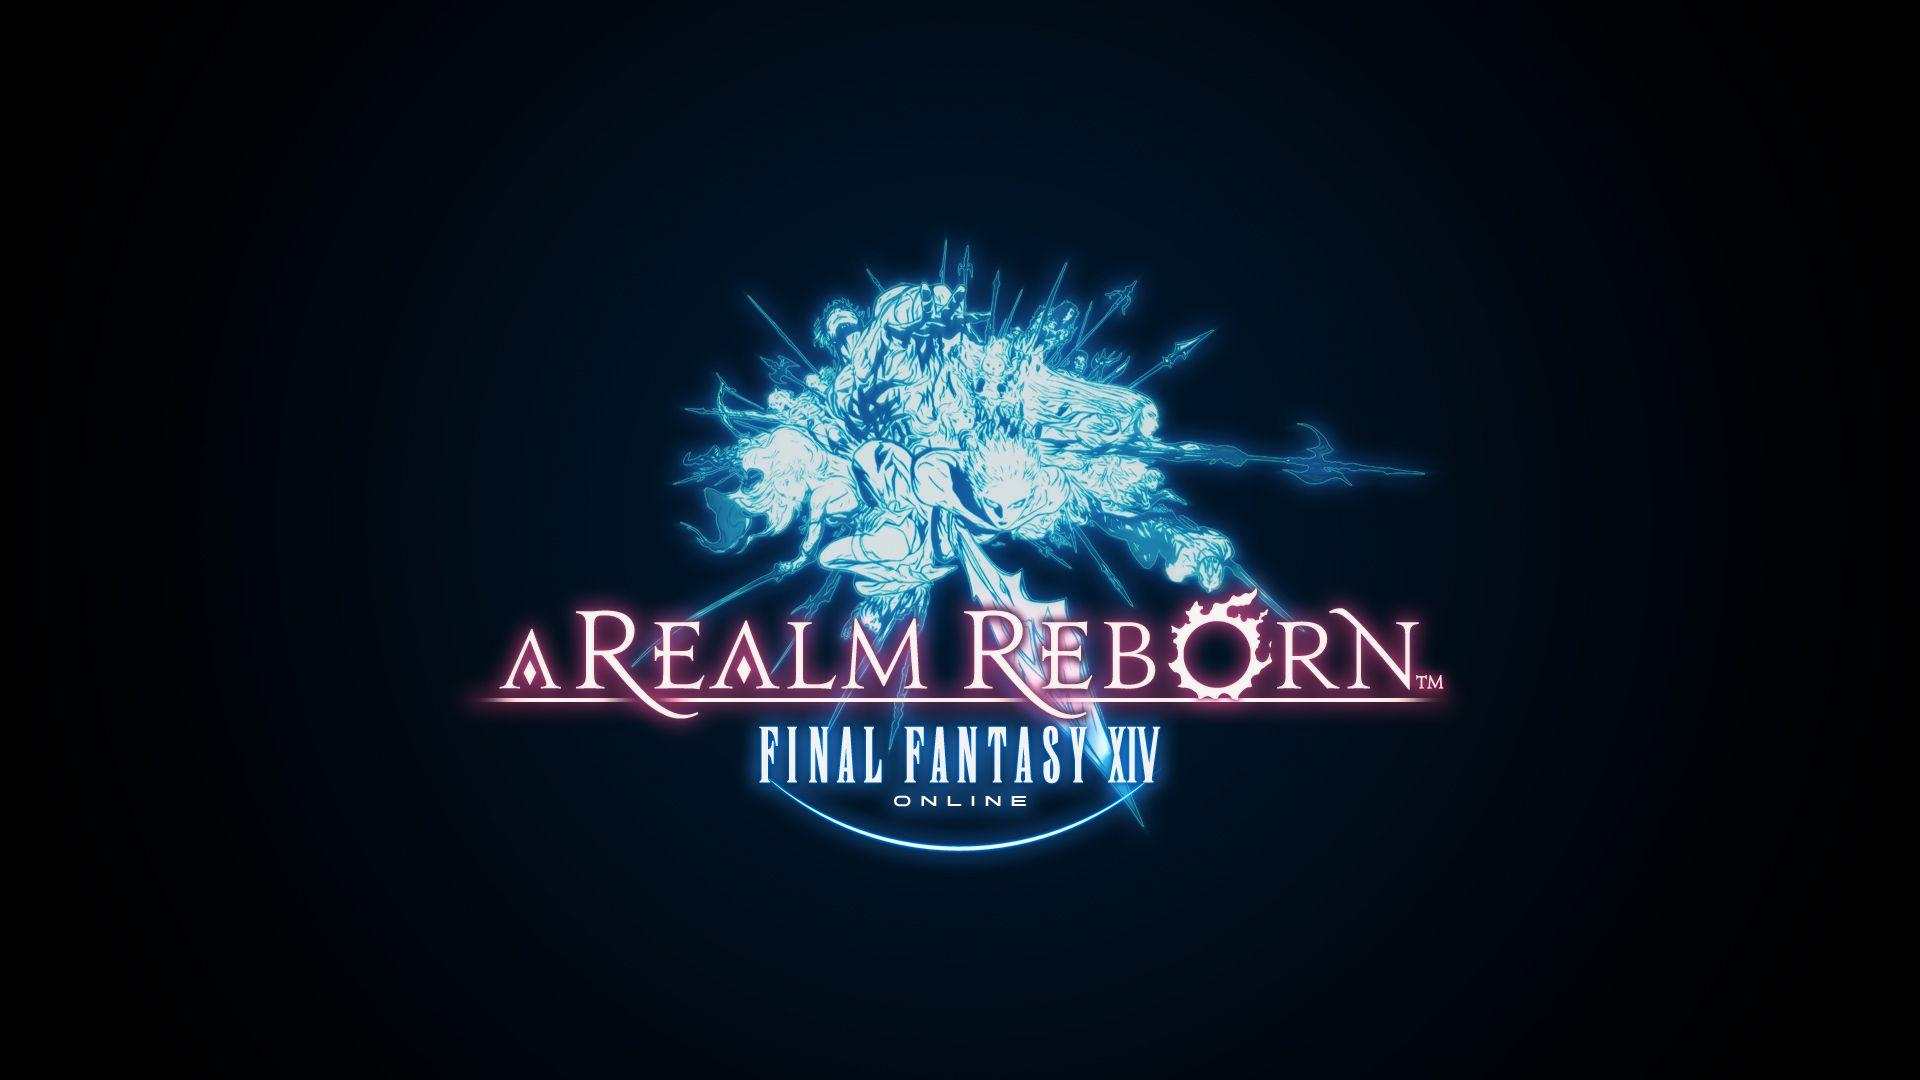 """Square Enix Announces Thanksgiving Weekend Sale Including """"Final Fantasy XIV: A Realm Reborn"""", """"Saints Row IV"""", and """"Kingdom Hearts 1.5 HD"""""""